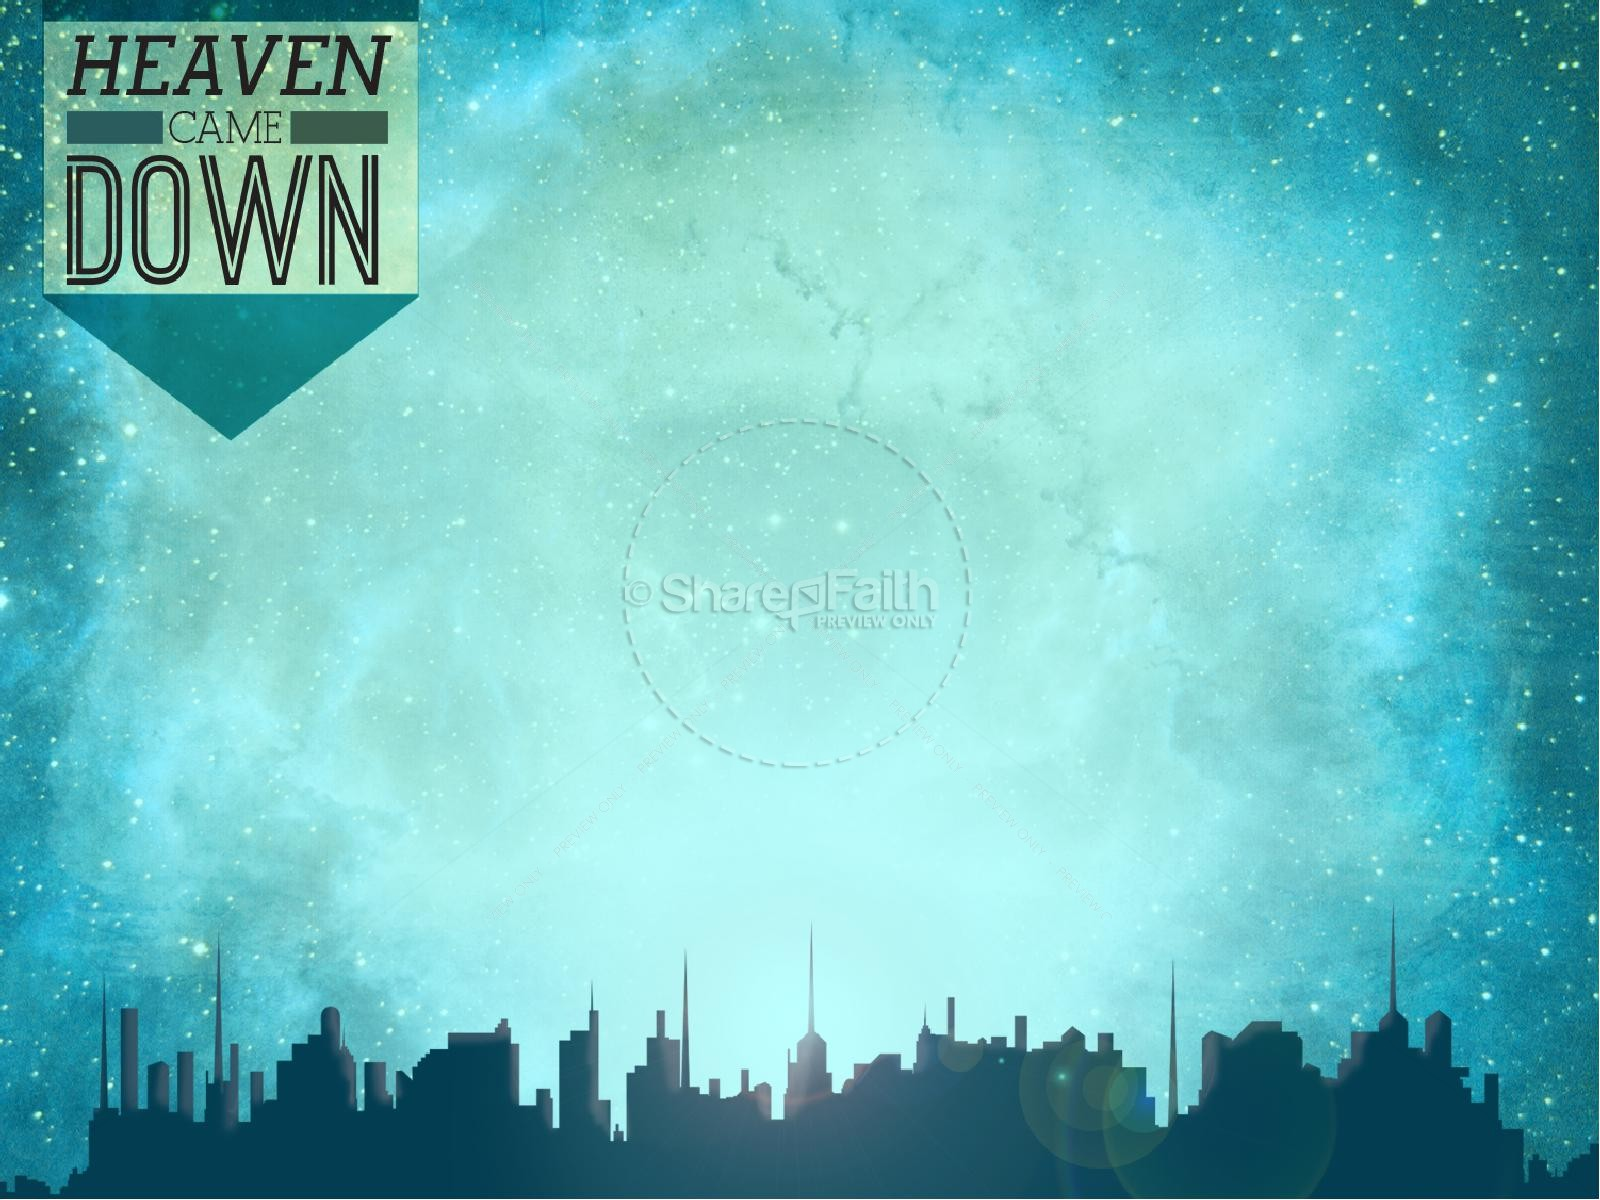 Hd Wallpaper Zip Pack Free Download Heaven Came Down Powerpoint Sermon Easter Sunday